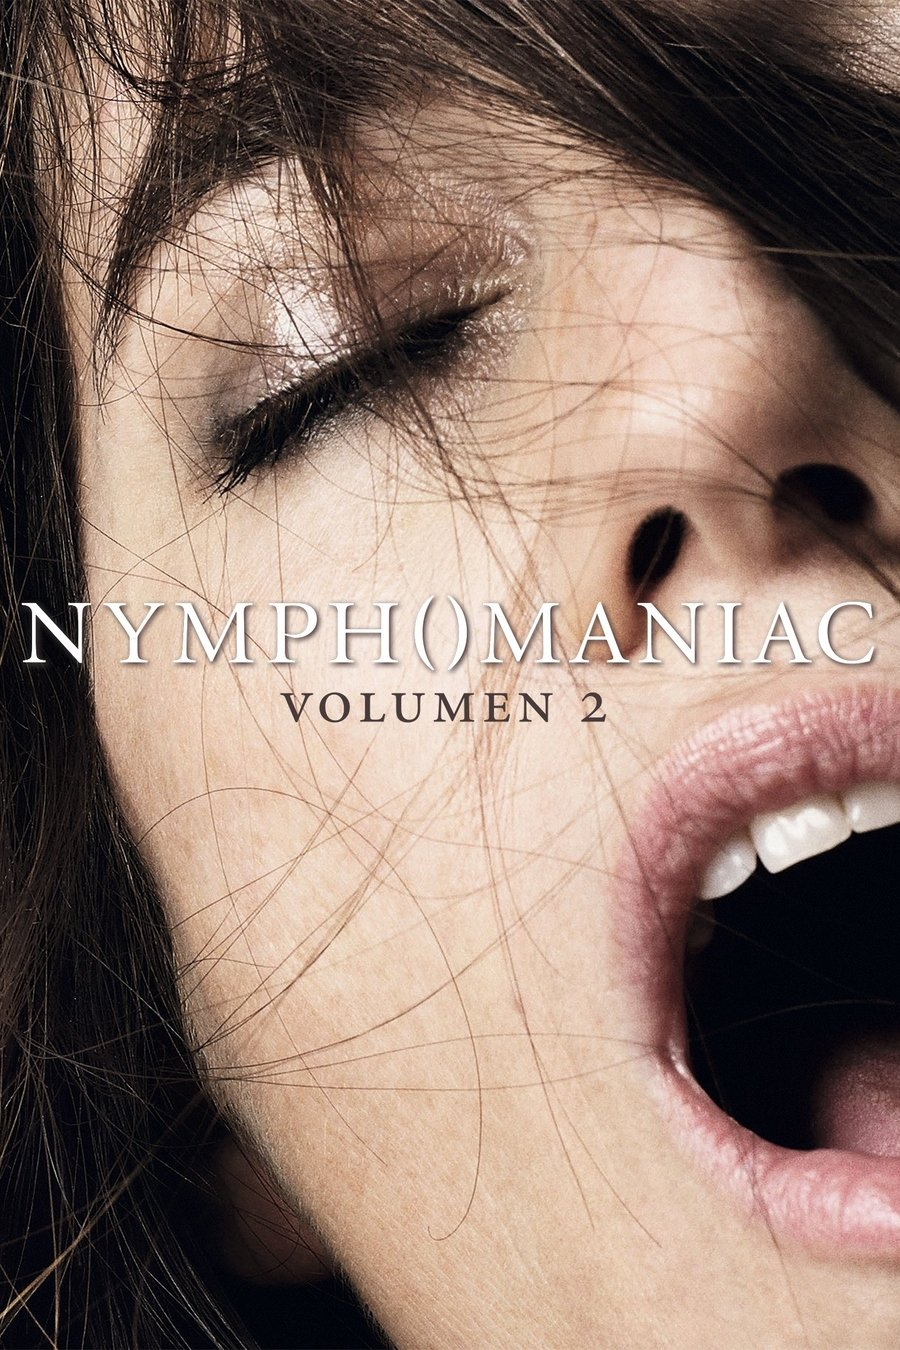 Nymphomaniac: Vol 2 Director's Cut